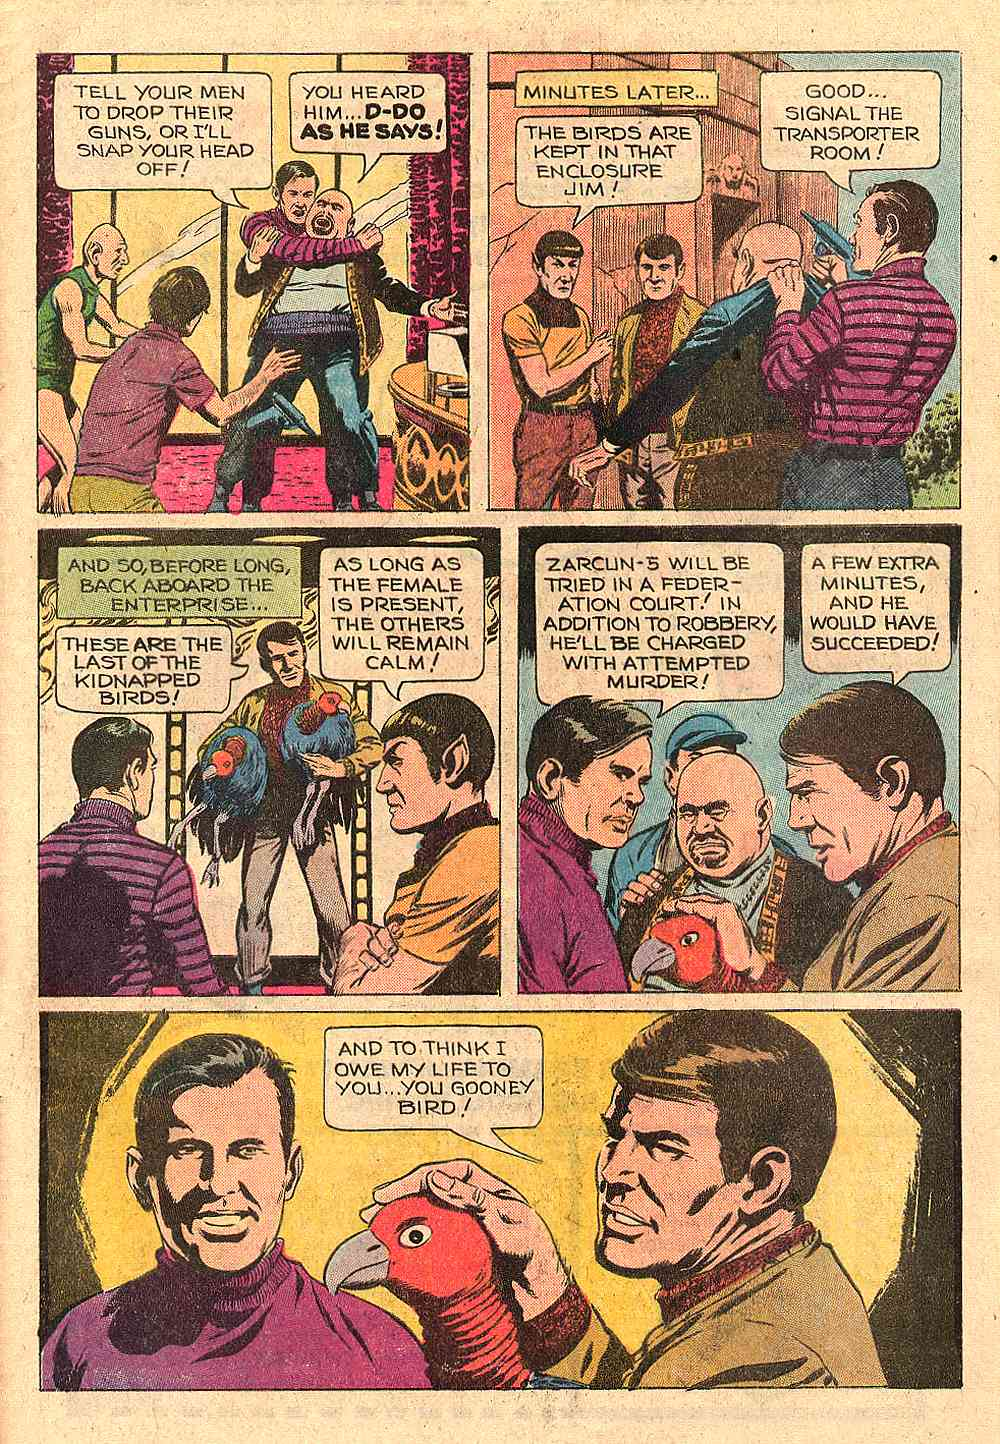 Star Trek (1967) #54 #54 - English 23